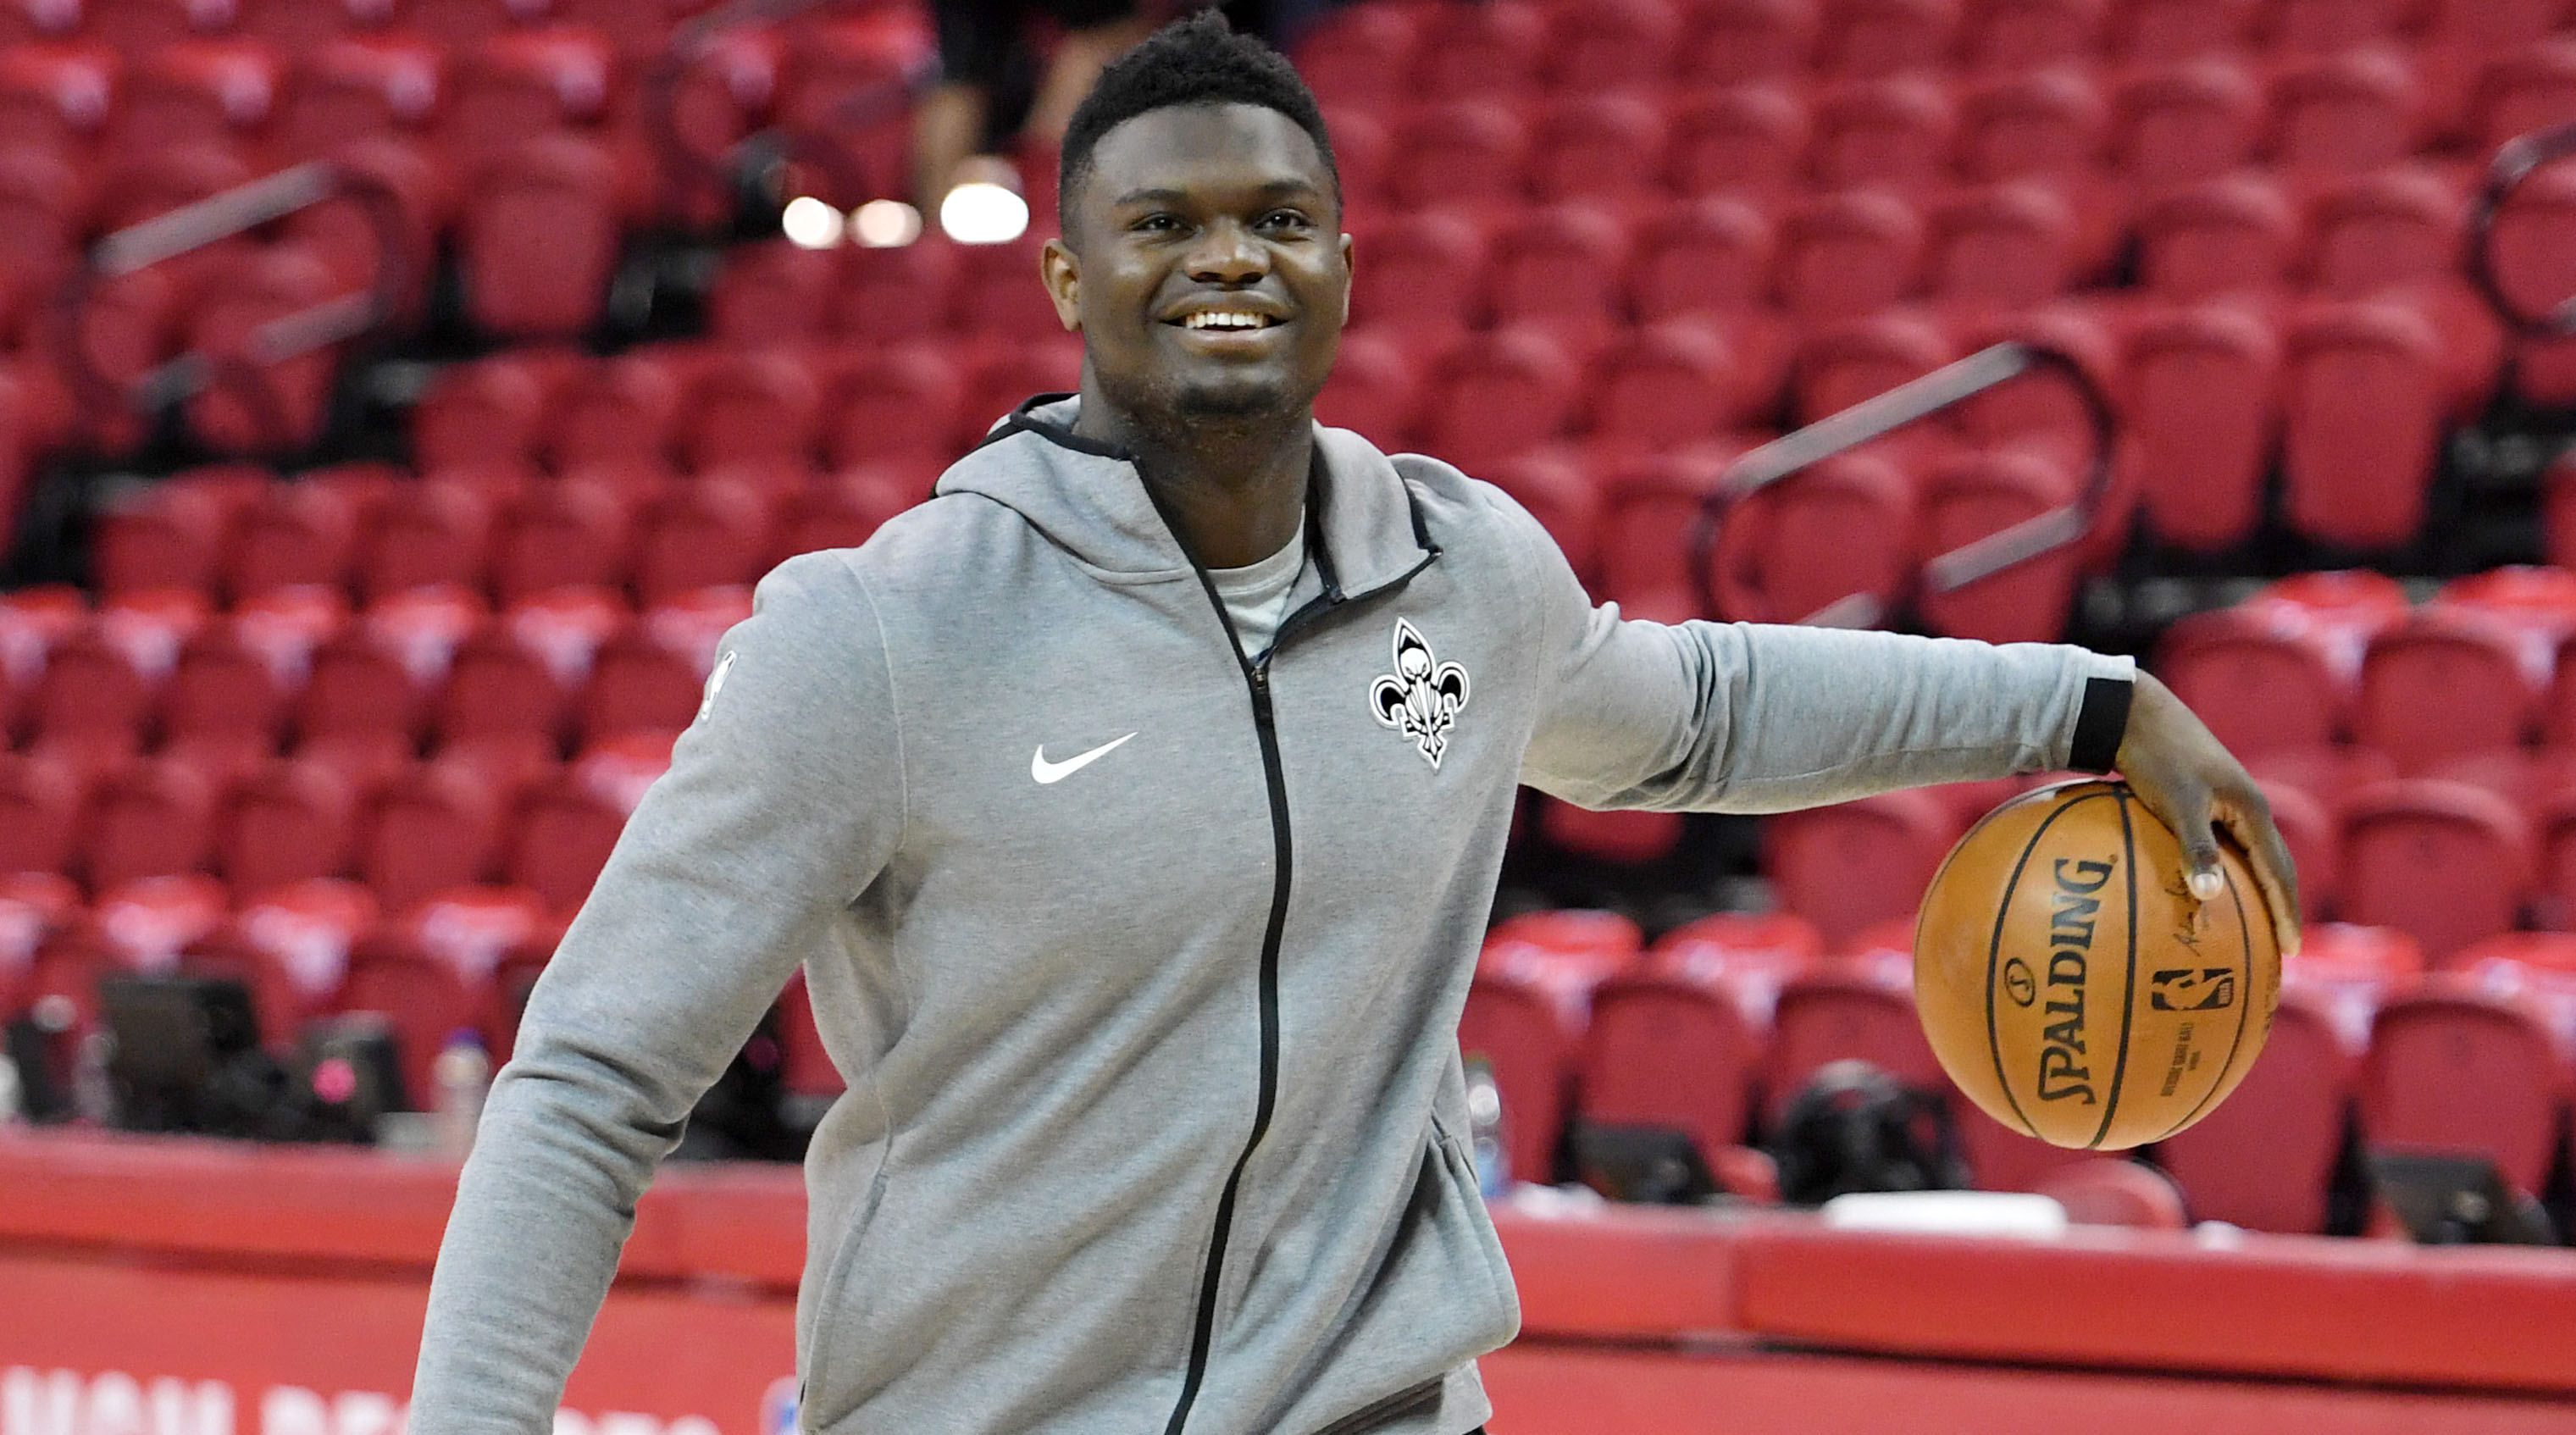 Zion Williamson drains three-pointer from Pelicans bench